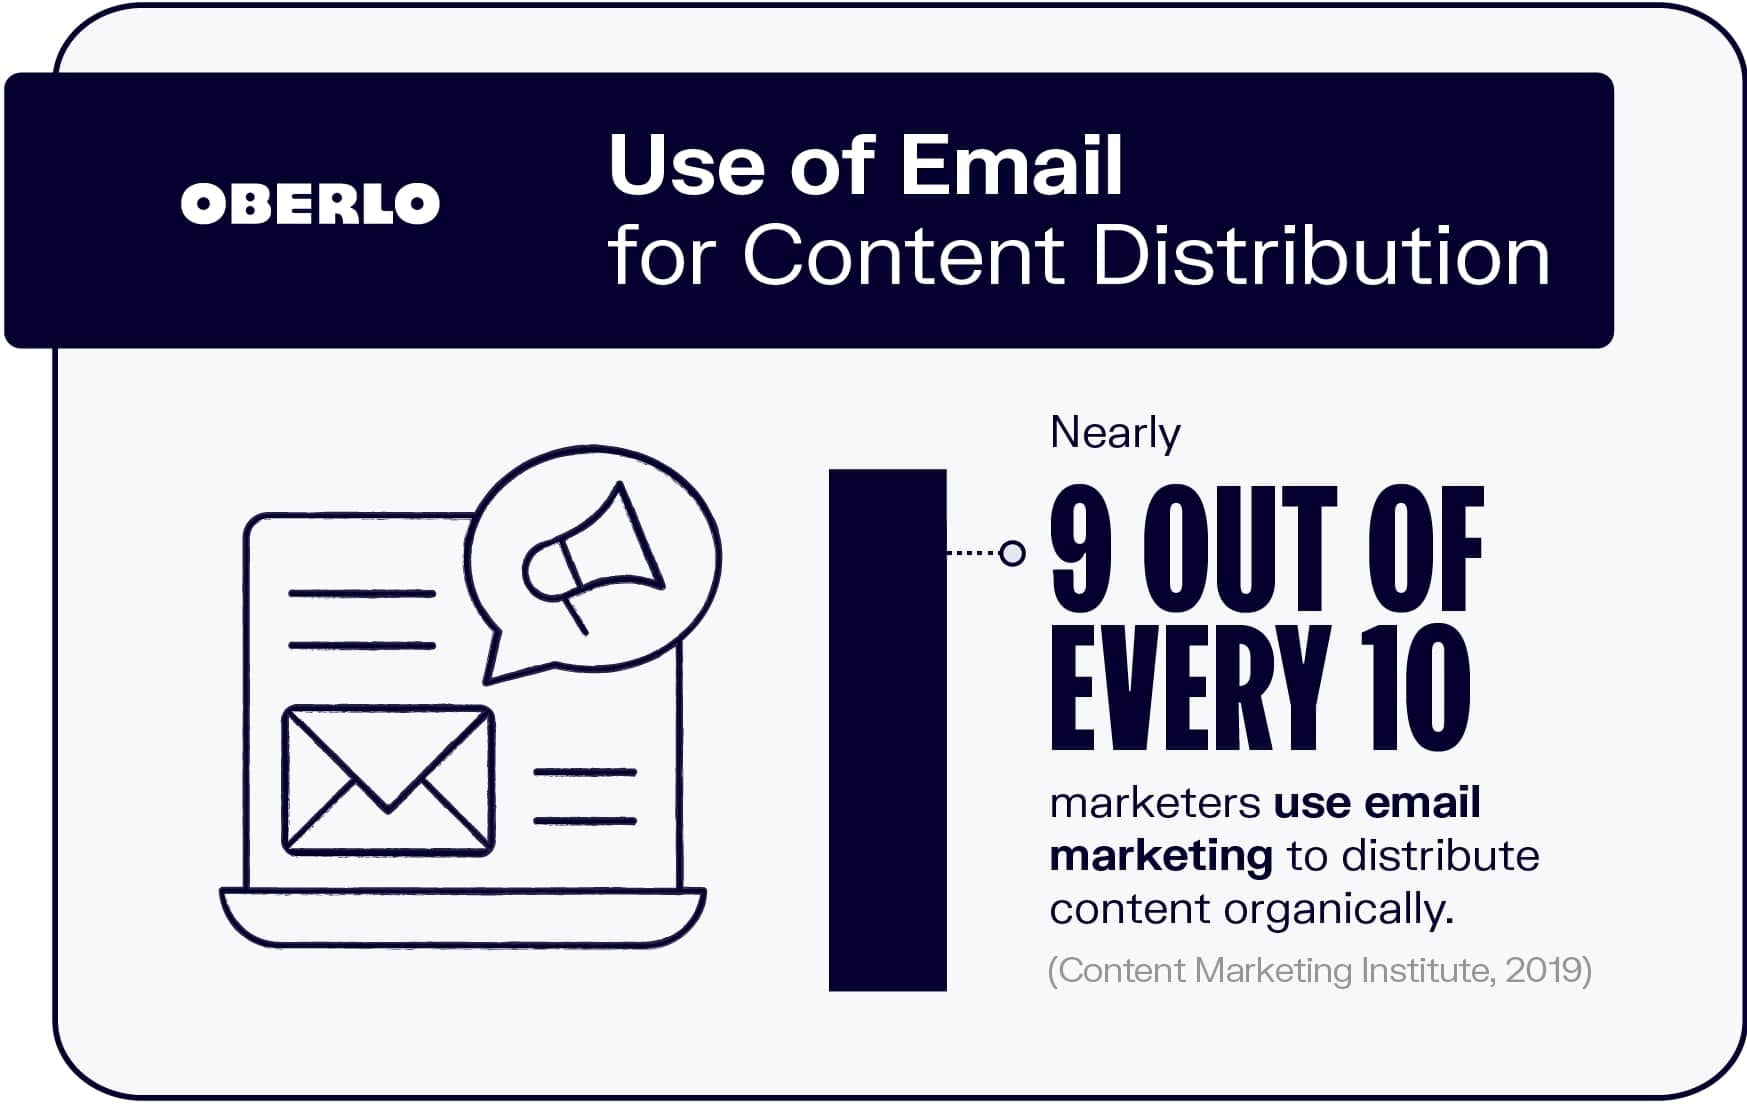 Use of Email for Content Distribution